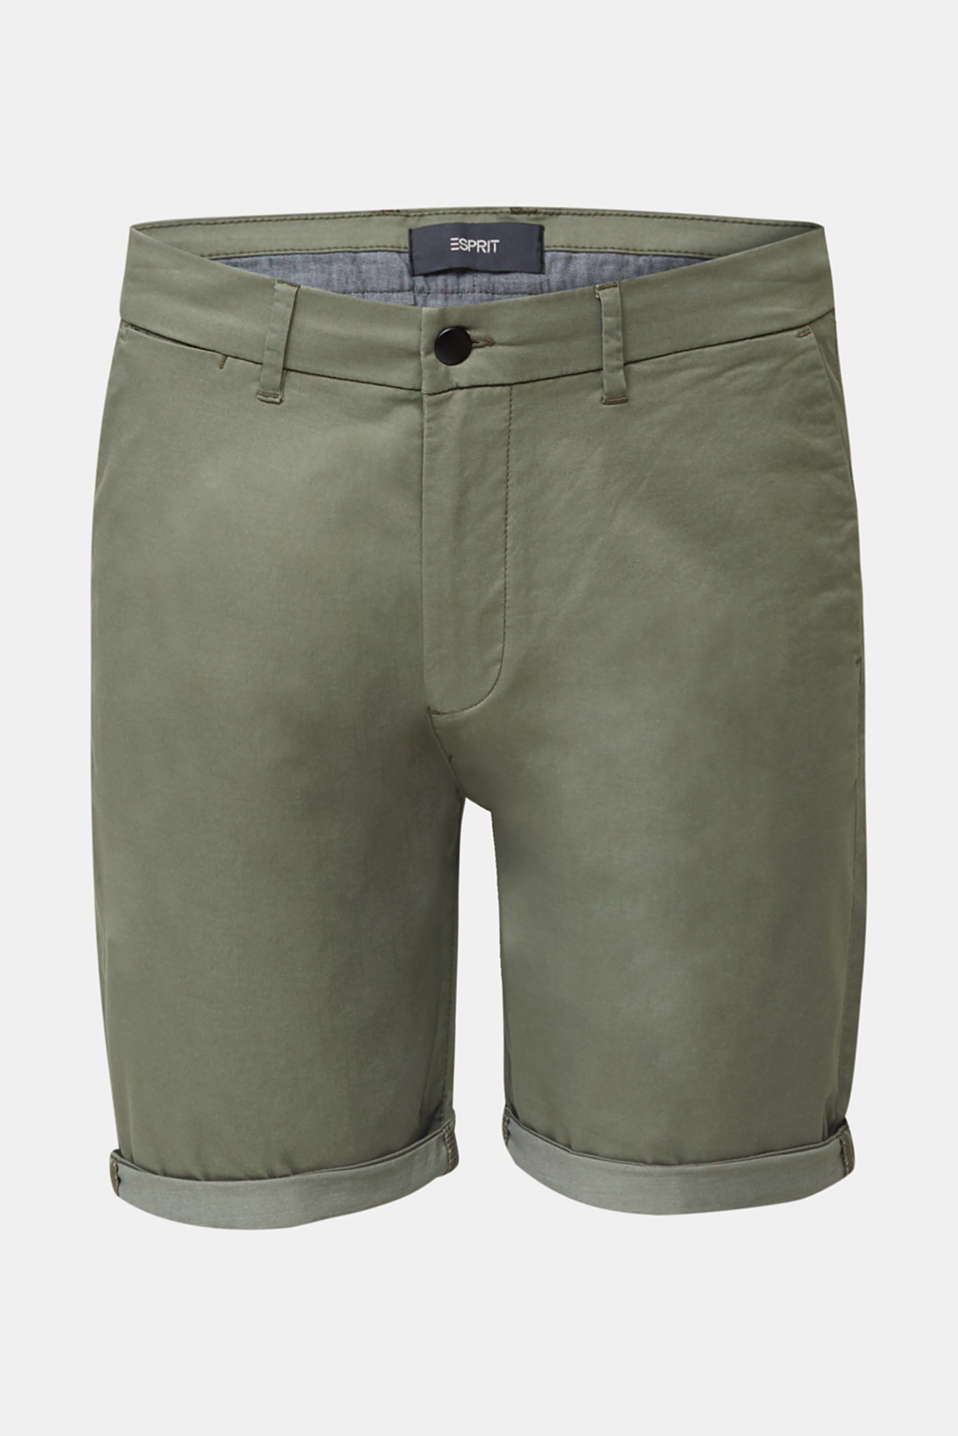 Shorts with COOLMAX®, organic cotton, LIGHT KHAKI, detail image number 7